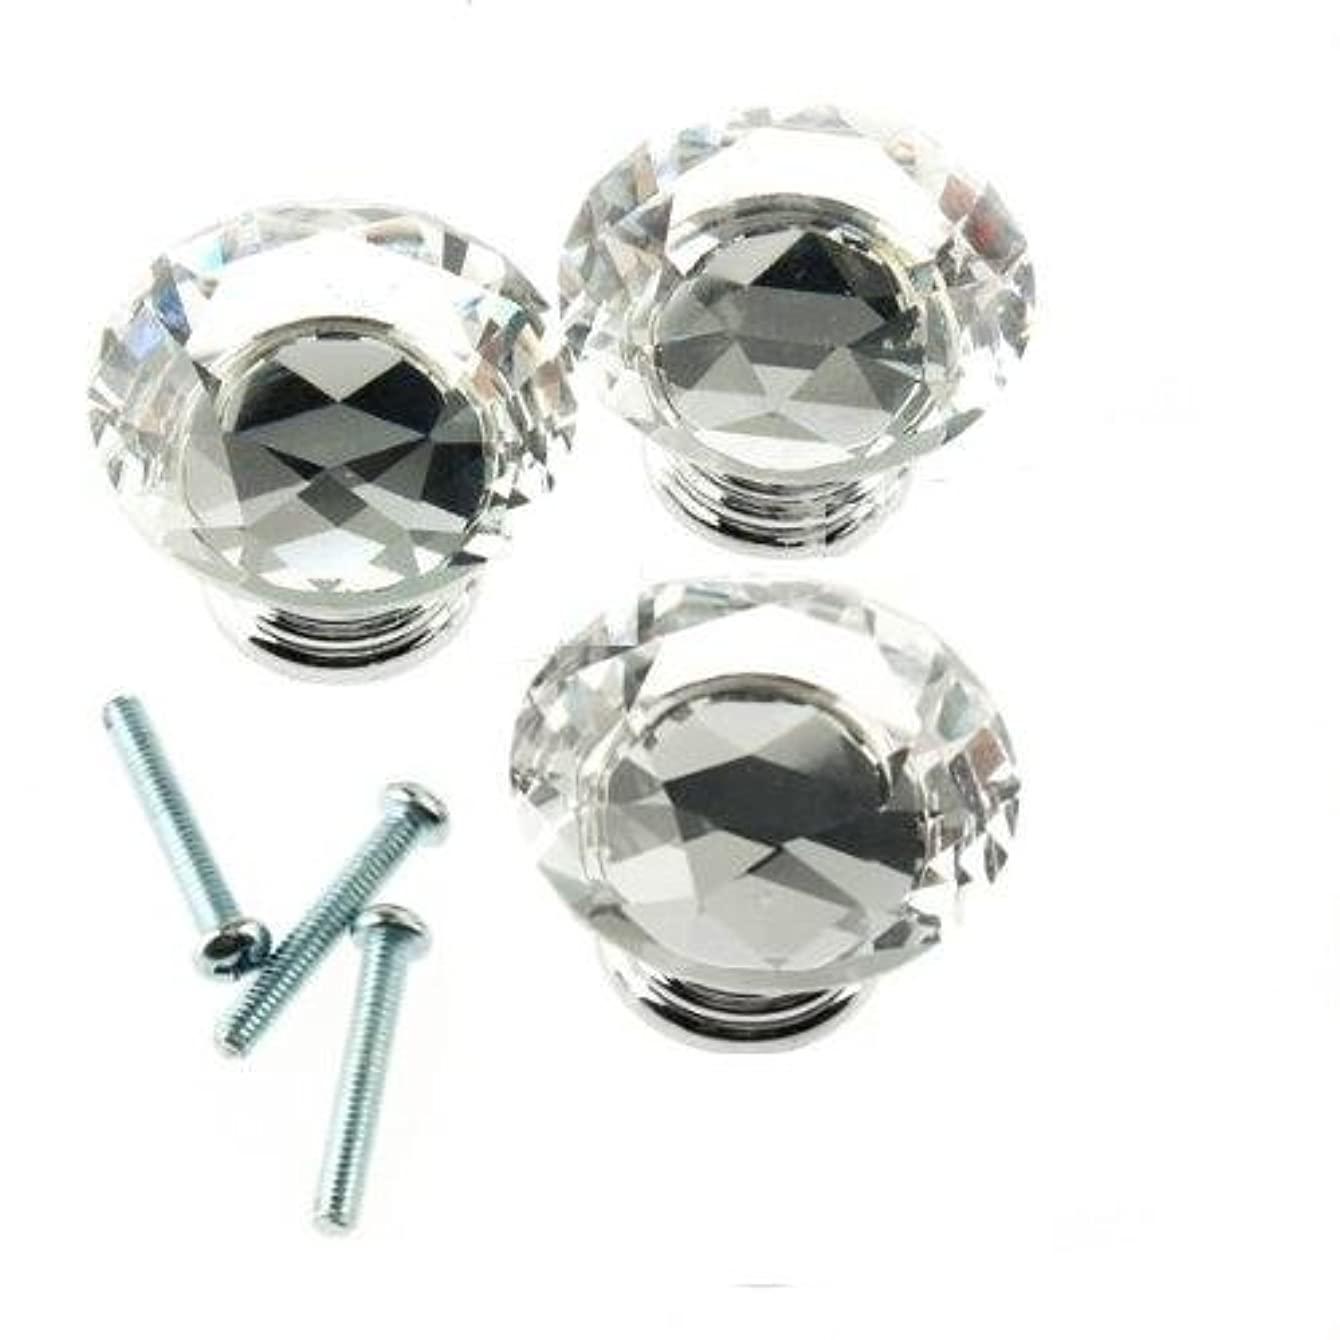 HOSL 10PCS 40mm Diamond Shape Crystal Glass Cabinet Knob Cupboard Drawer Pull Handle/Great for Cupboard, Kitchen and Bathroom Cabinets, Shutters, etc (10, 40MM)